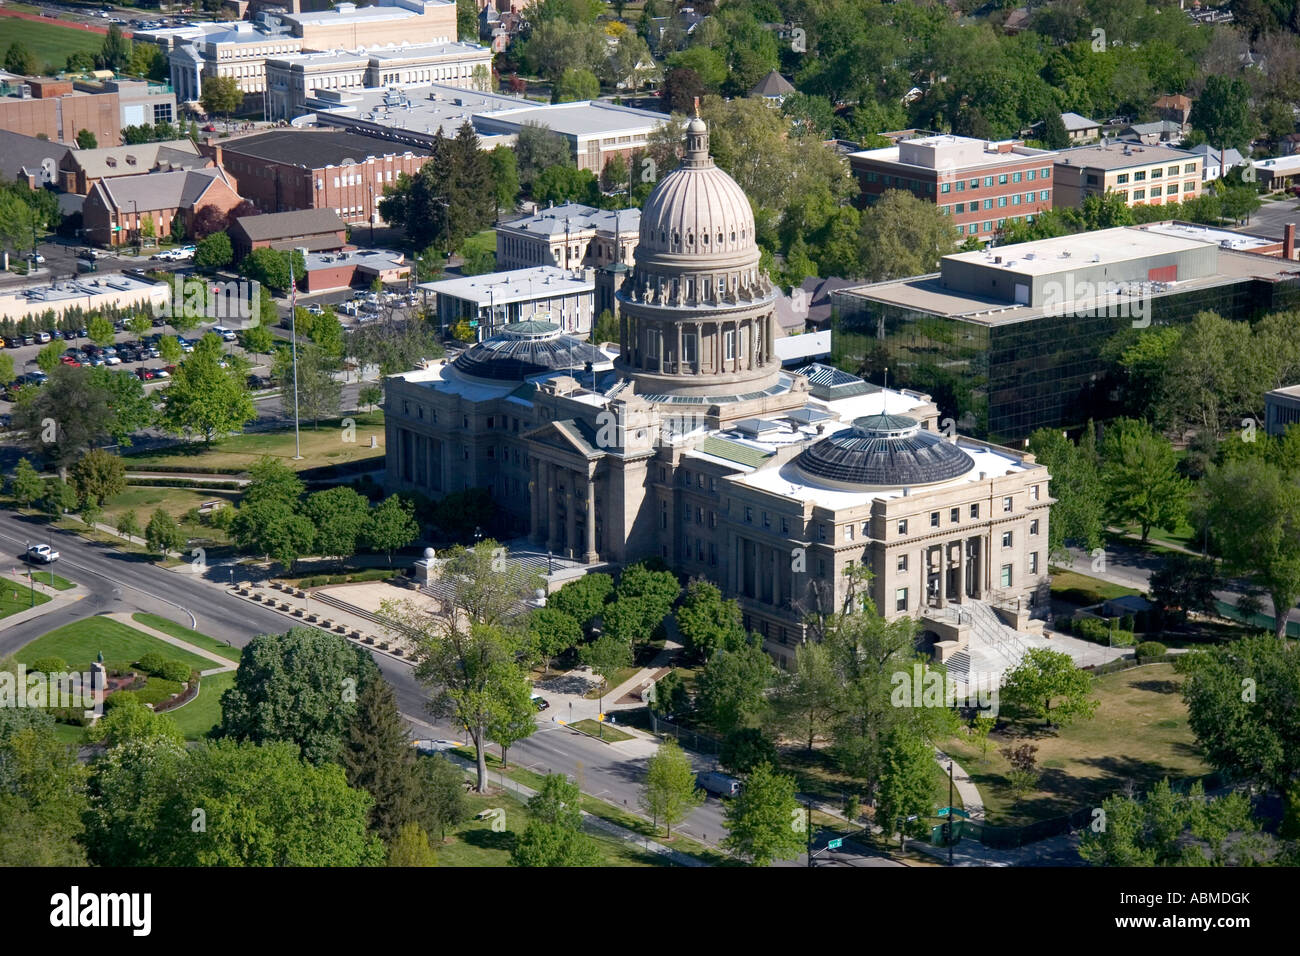 Aerial View Of The Idaho State Capitol Building In Boise